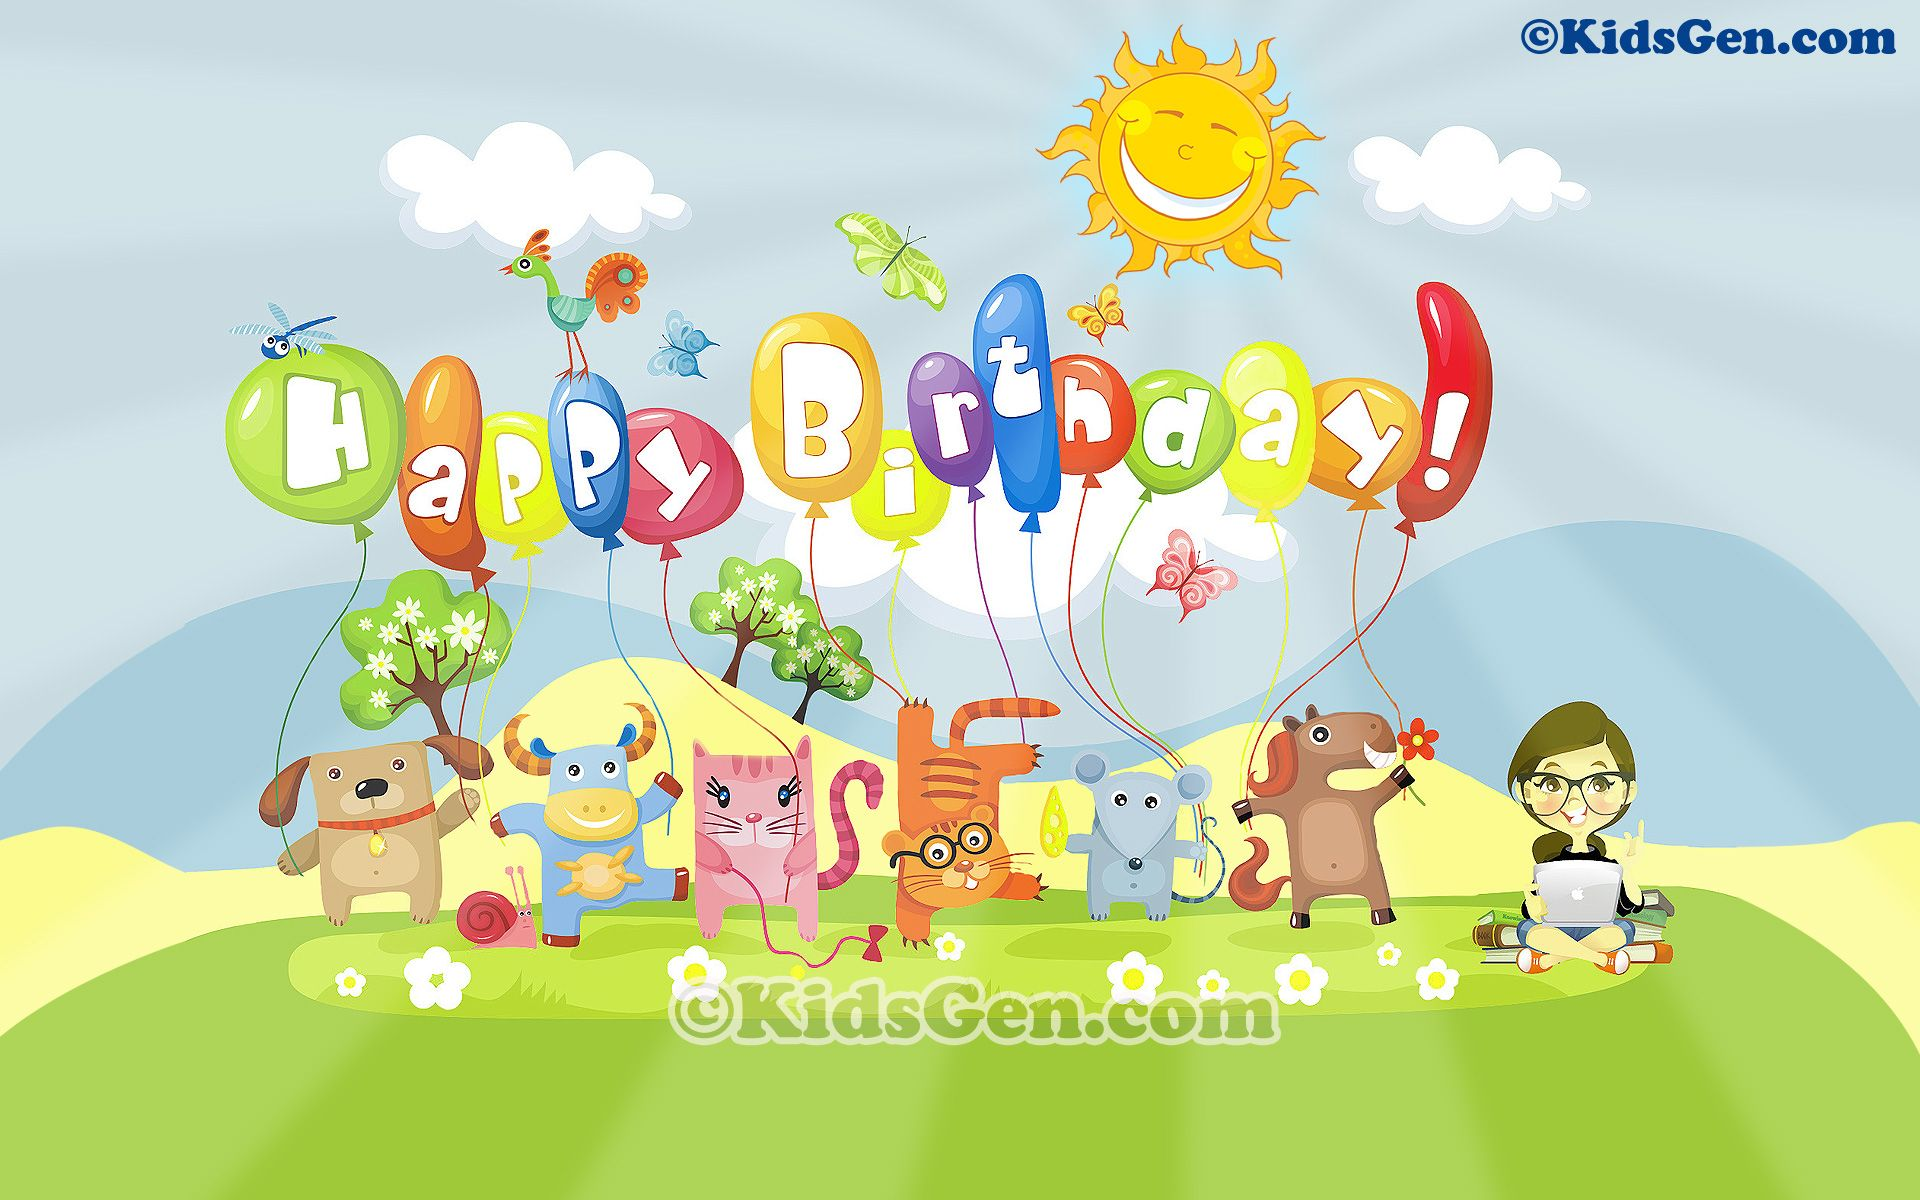 cartoon birthday wallpaper ; 83ba4eabb4e9ab2214f18cea18157391